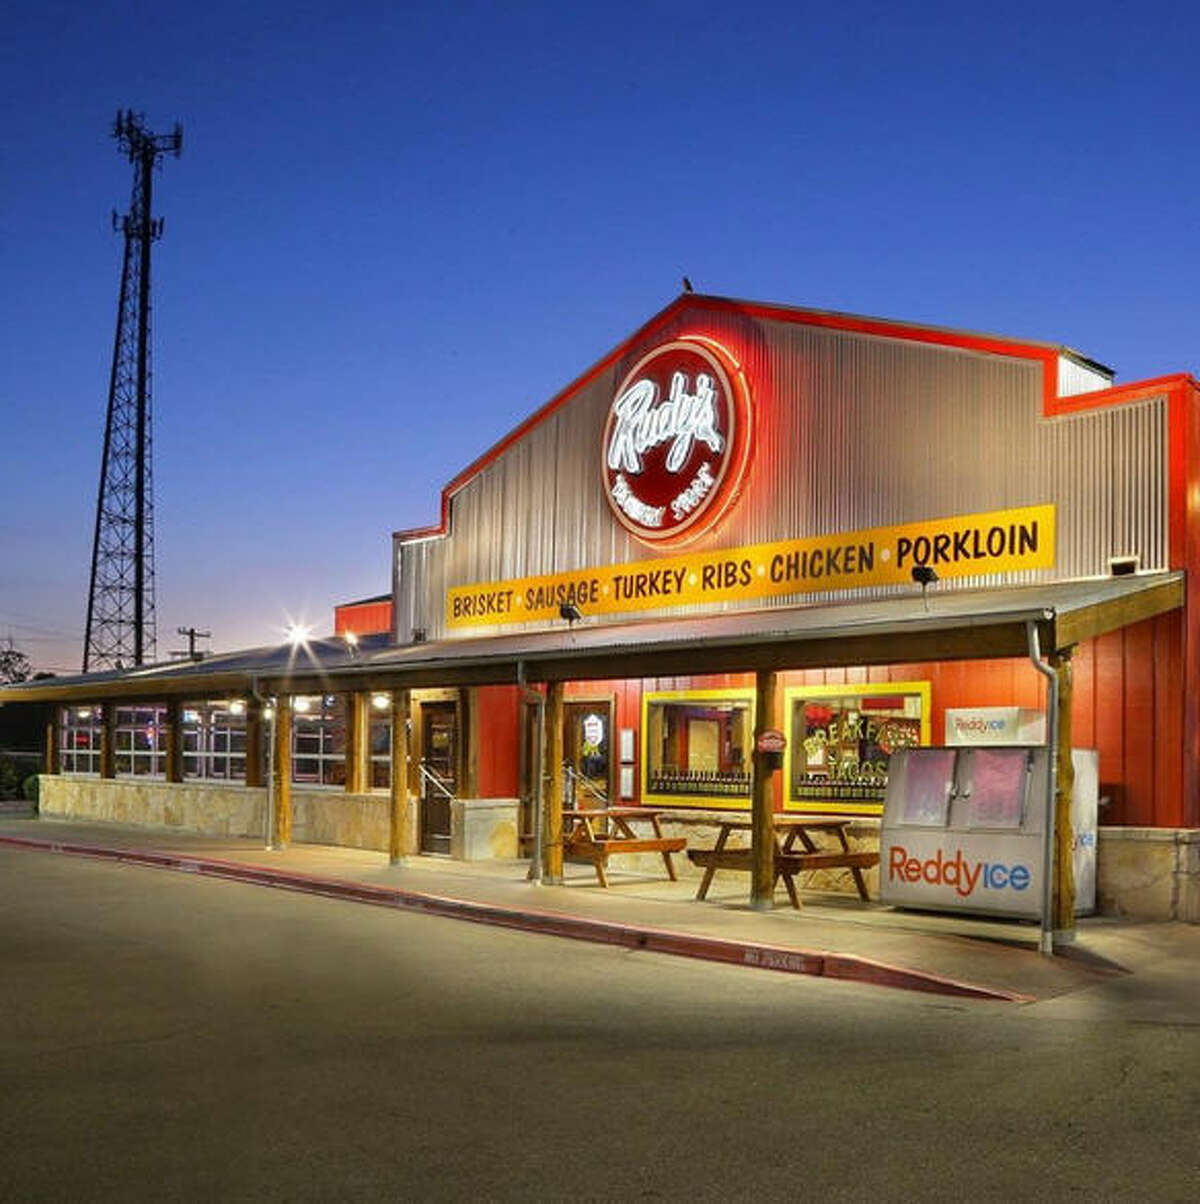 PHOTOS: Fun facts about Texas staple Rudy's Country Store and Bar-B-Q Travelers in Texas and four other states know Rudy's for its trademark brisket and sides. Find out a little bit more about this roadside destination. Click through to learn more about one of Texas' best BBQ chains...